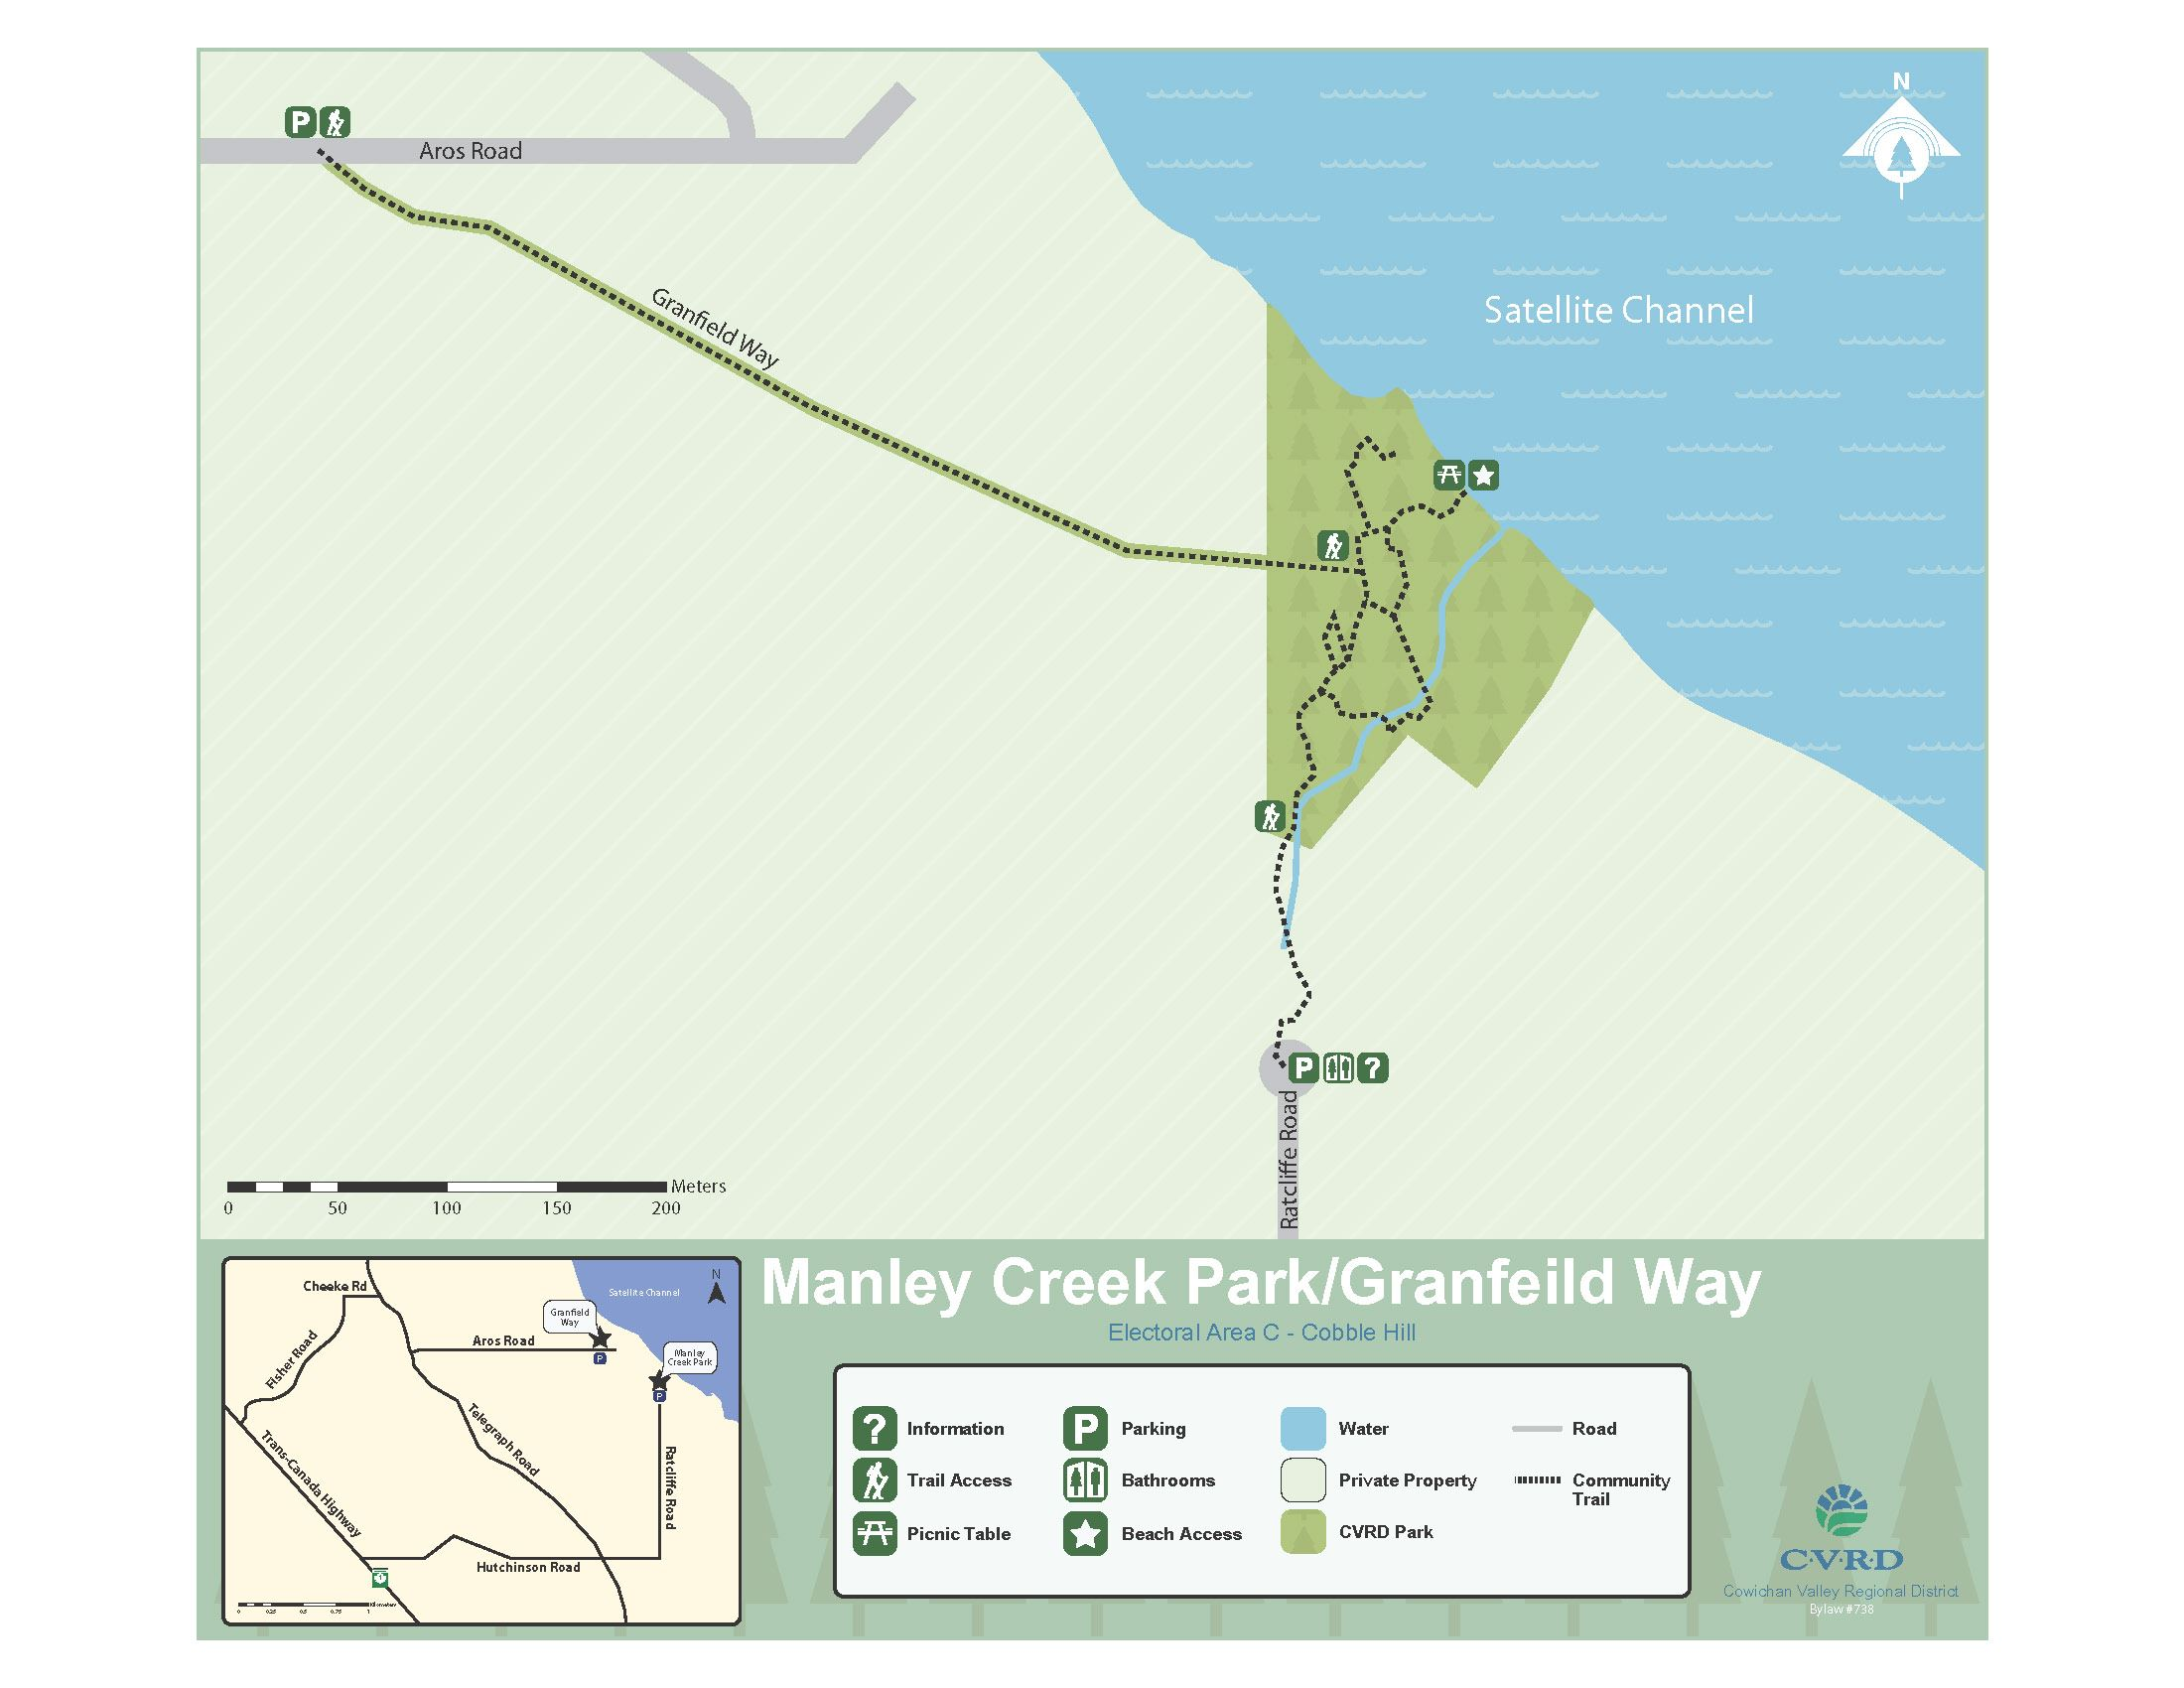 Manley Creek Park and Granfield Way map